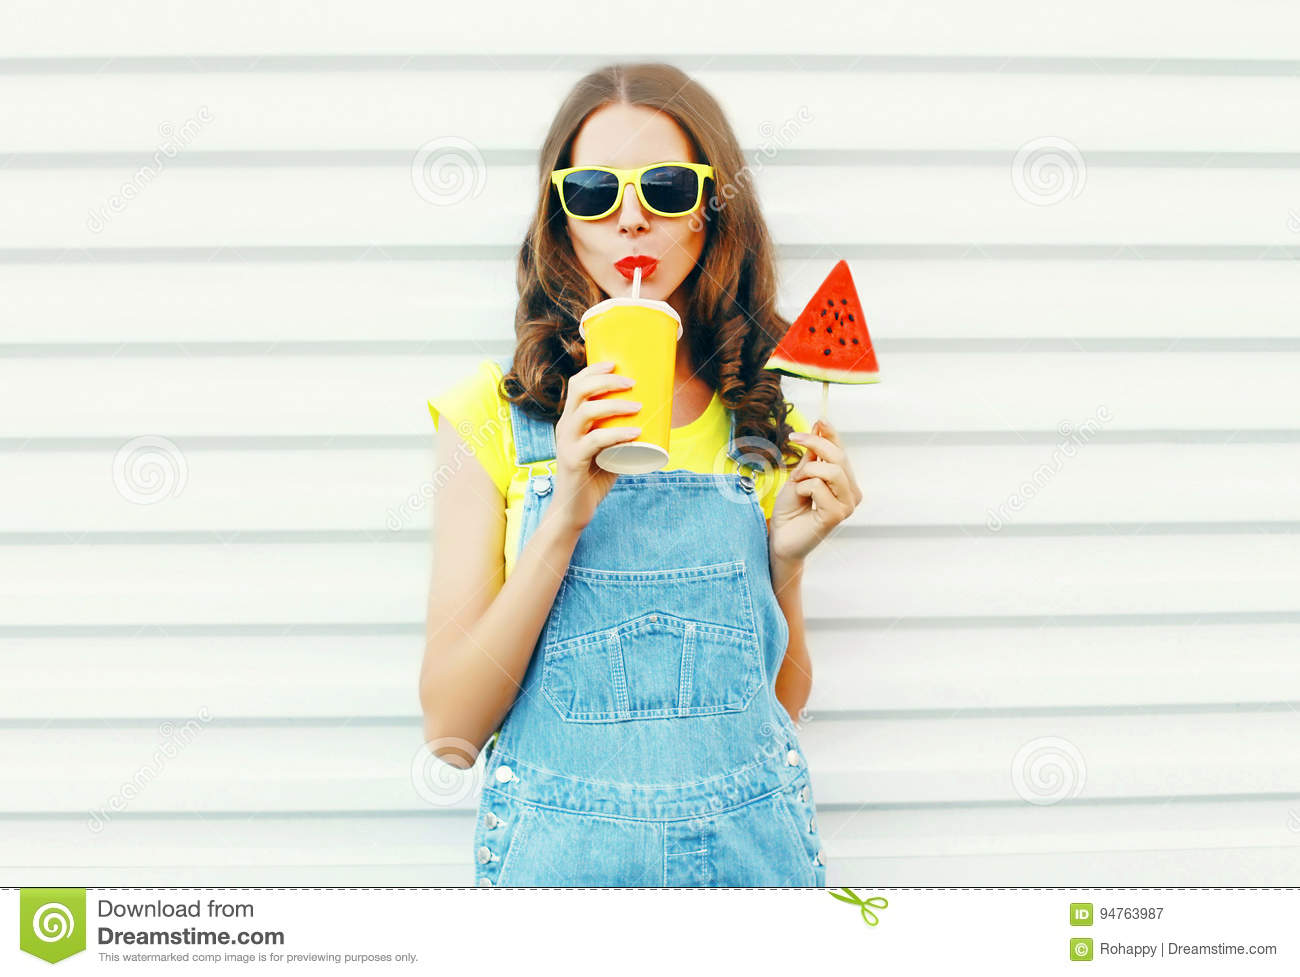 Fashion portrait pretty cool girl drinks a juice from cup holds slice watermelon ice cream